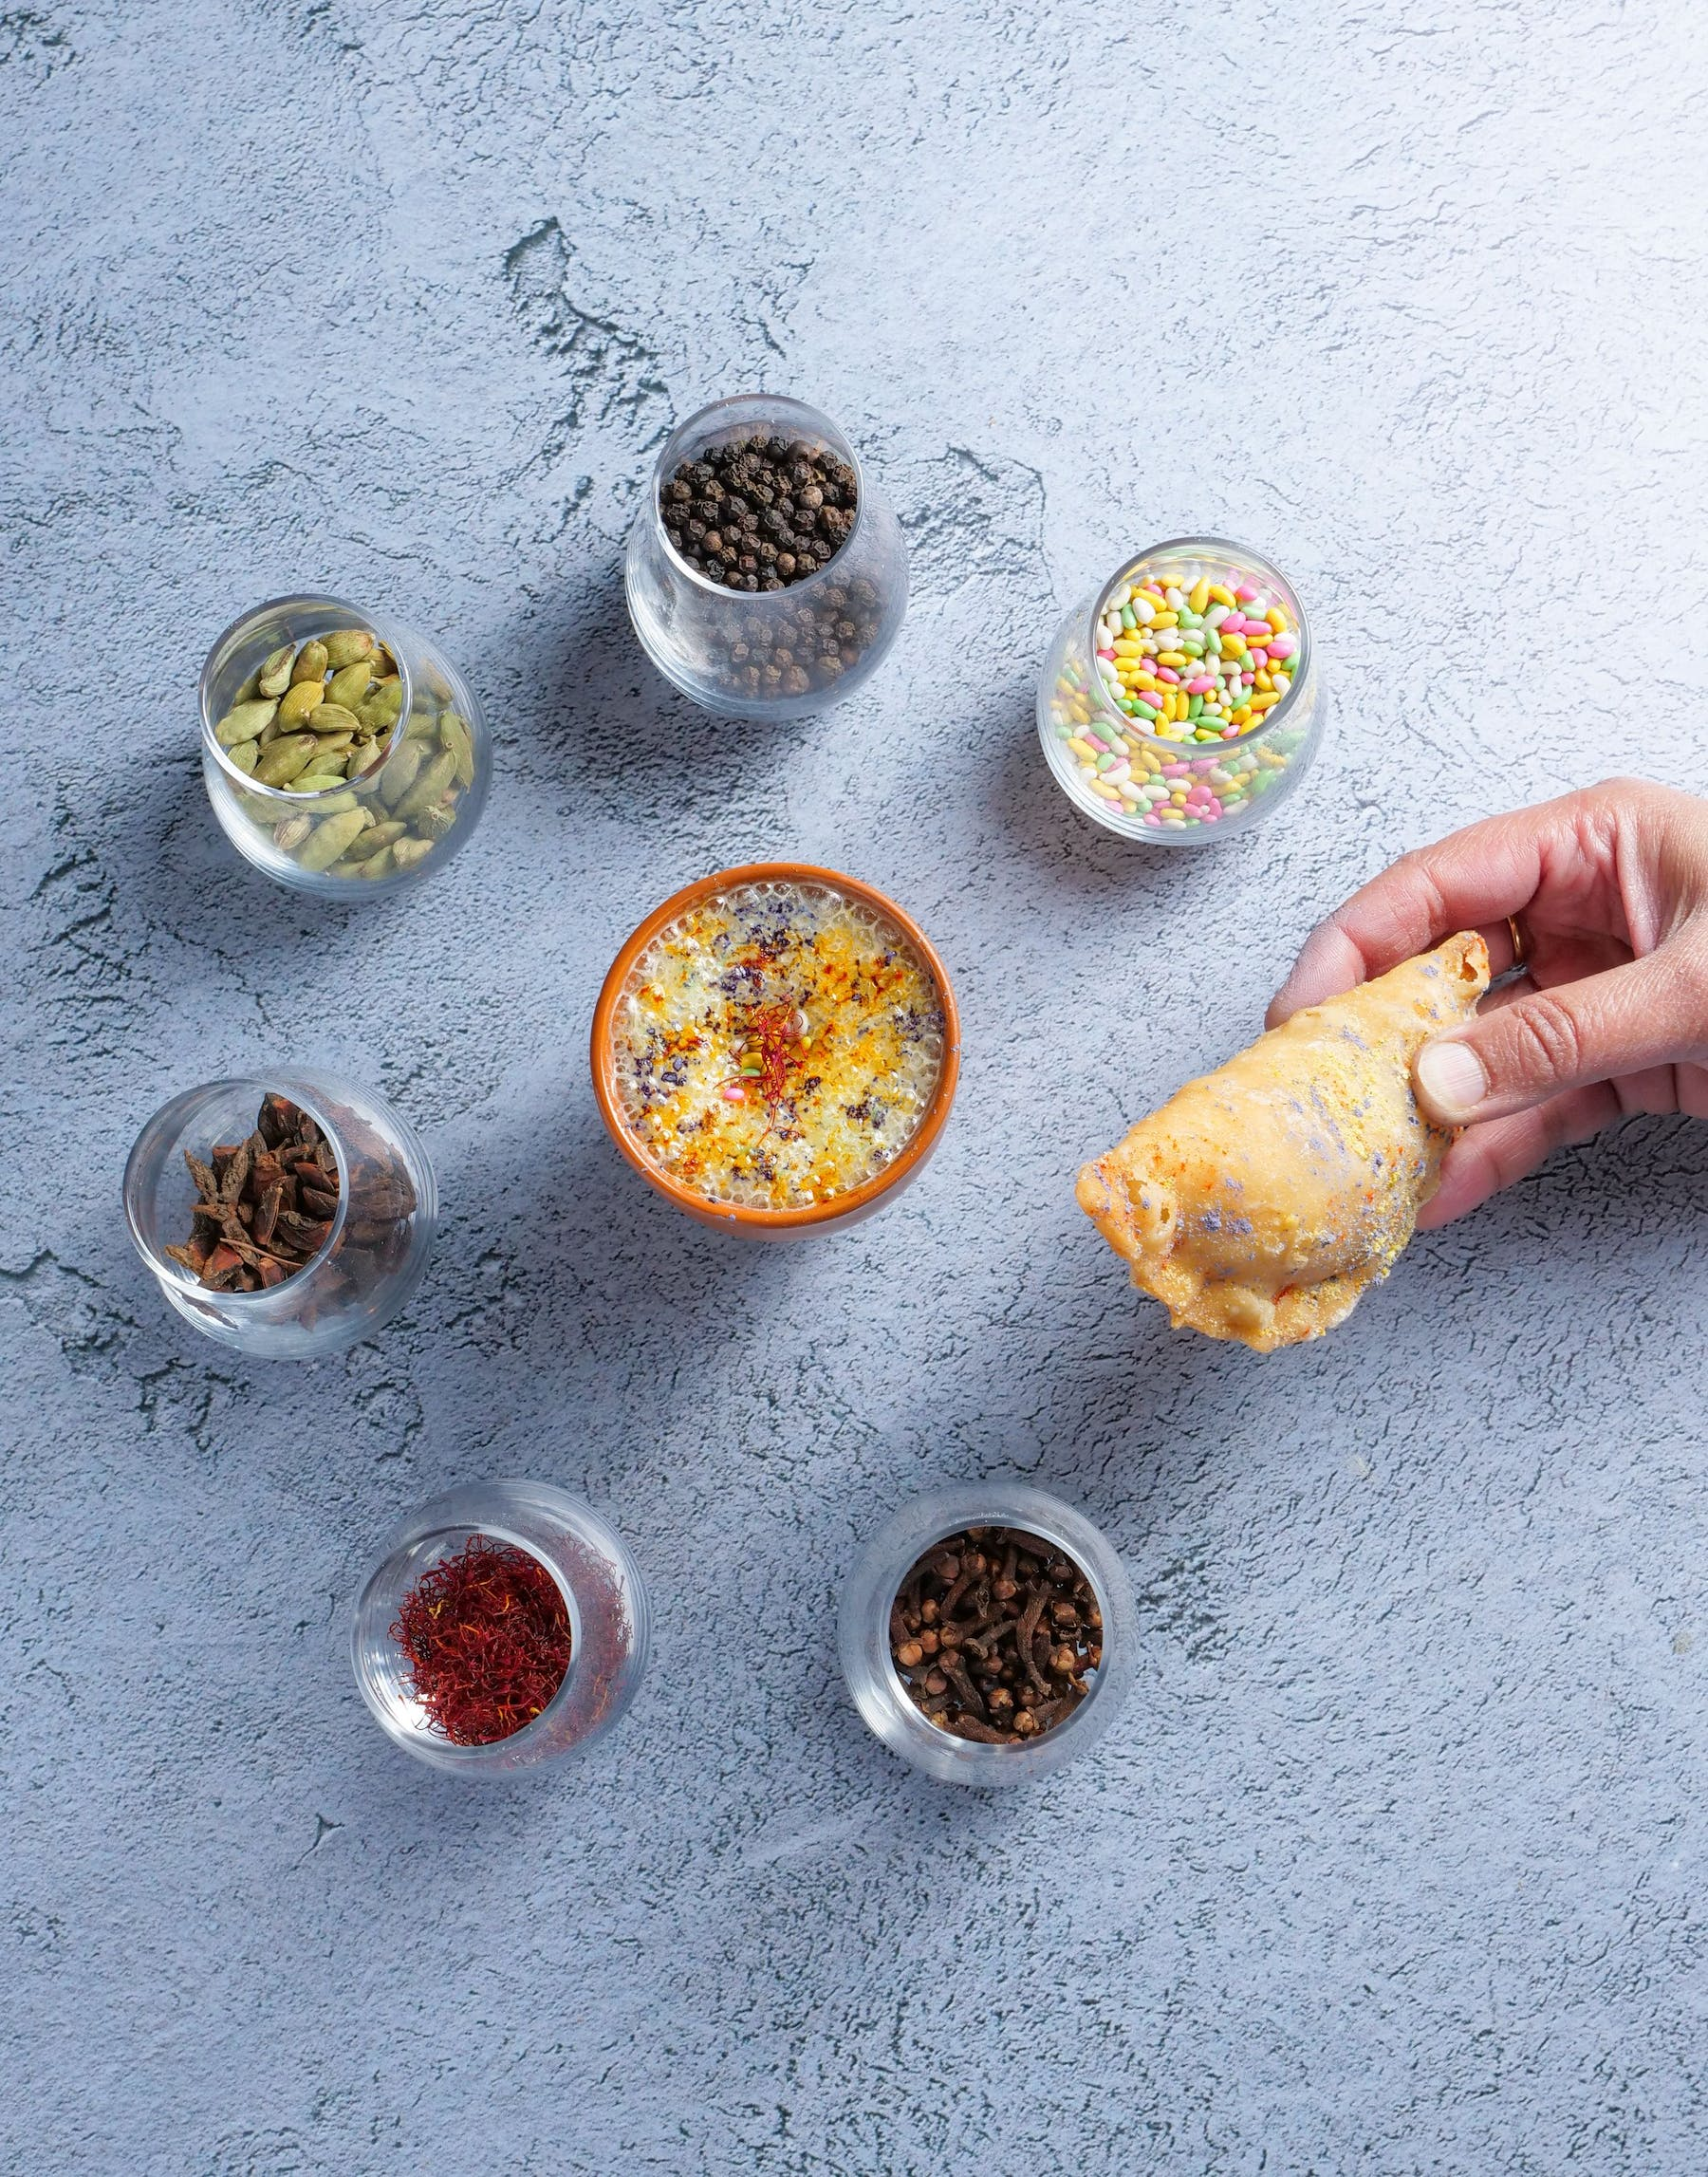 a close up of food on a counter